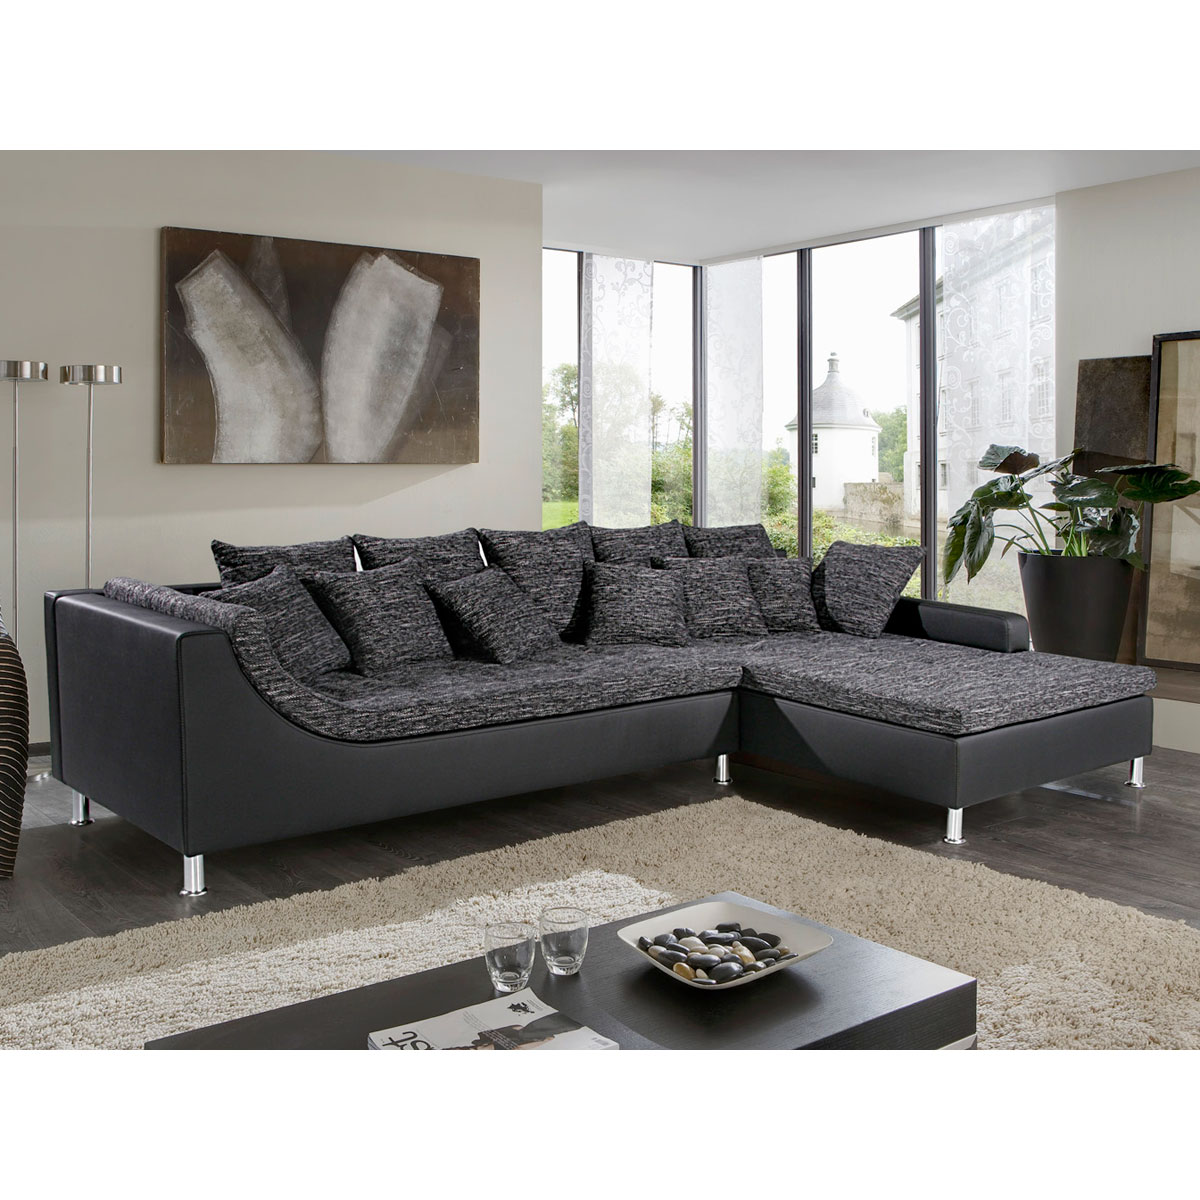 wohnlandschaft montego ecksofa sofa couch mit ottomane mit kissen und hocker ebay. Black Bedroom Furniture Sets. Home Design Ideas